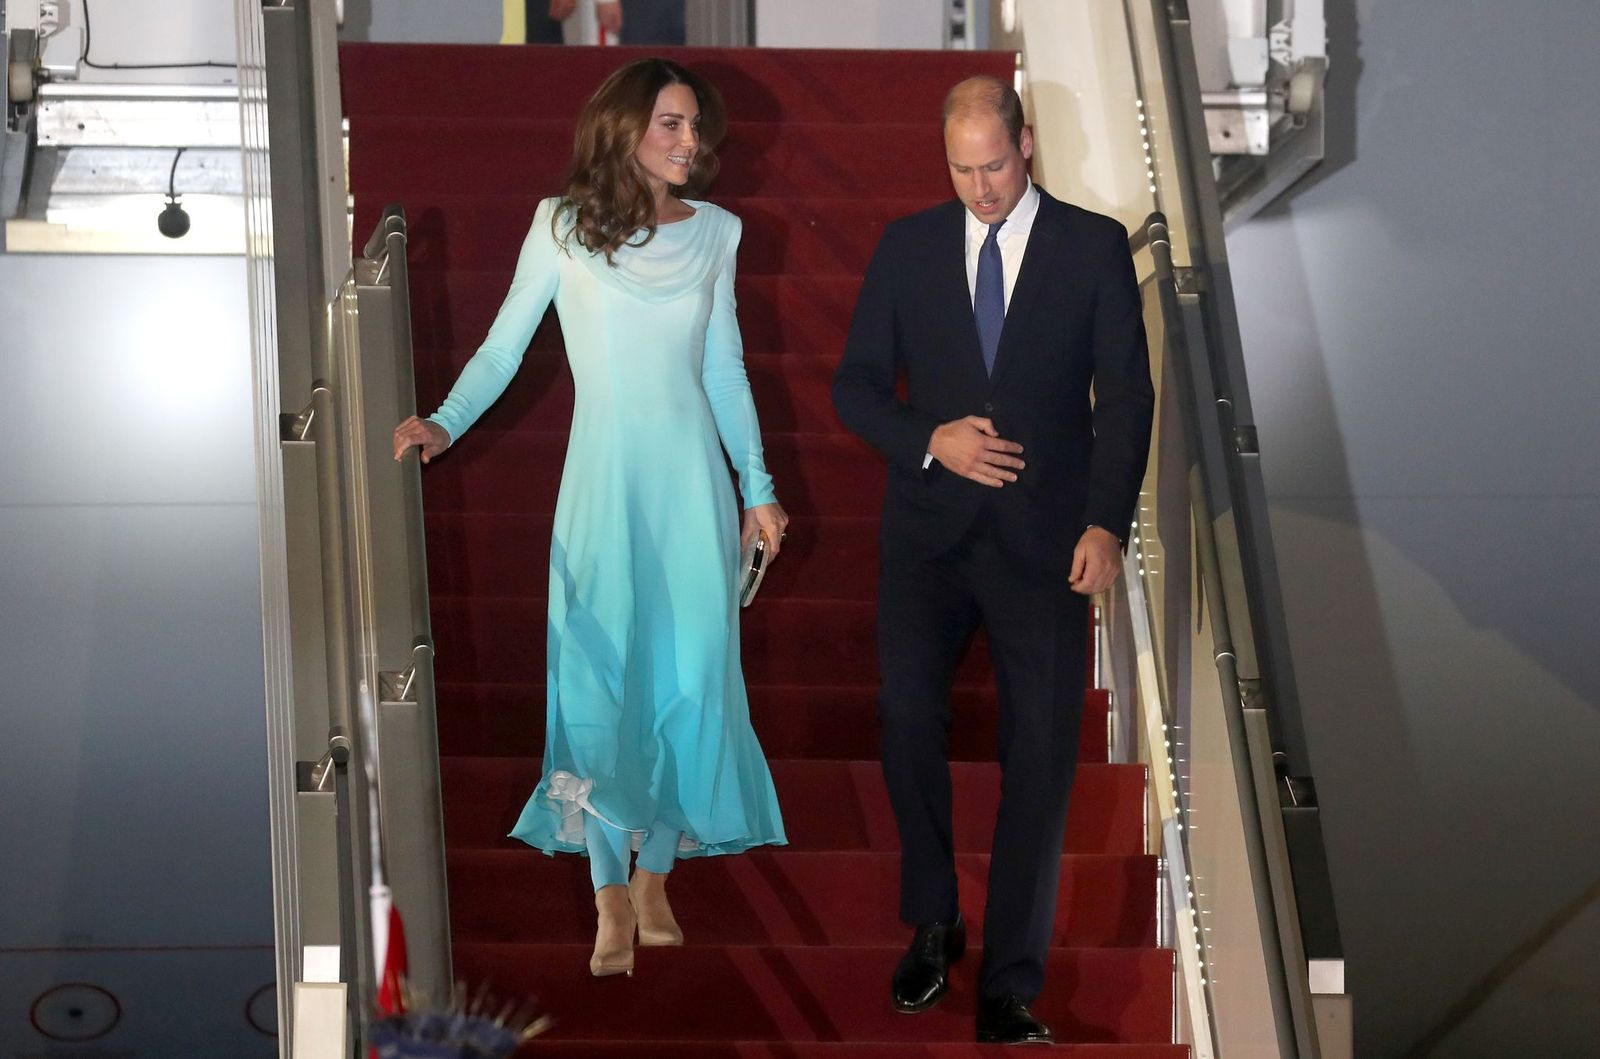 Kate Middleton and Prince William at Kur Khan airbase ahead of their royal tour of Pakistan on October 14, 2019 | Photo: Getty Images